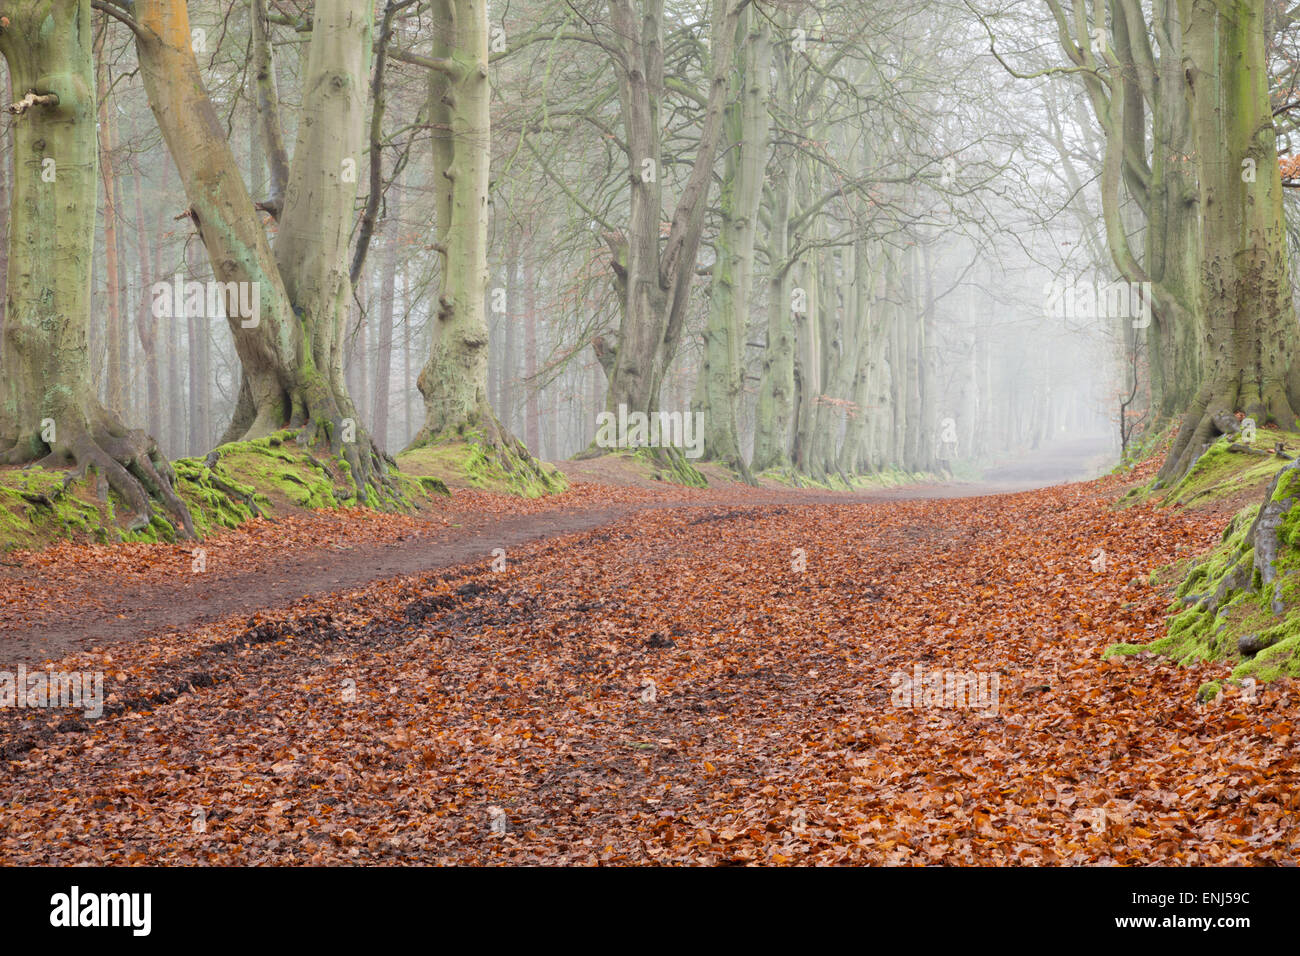 Morning mist lingers amongst the beech and fir trees of Harlestone Firs near Northampton in Northamptonshire, England. - Stock Image